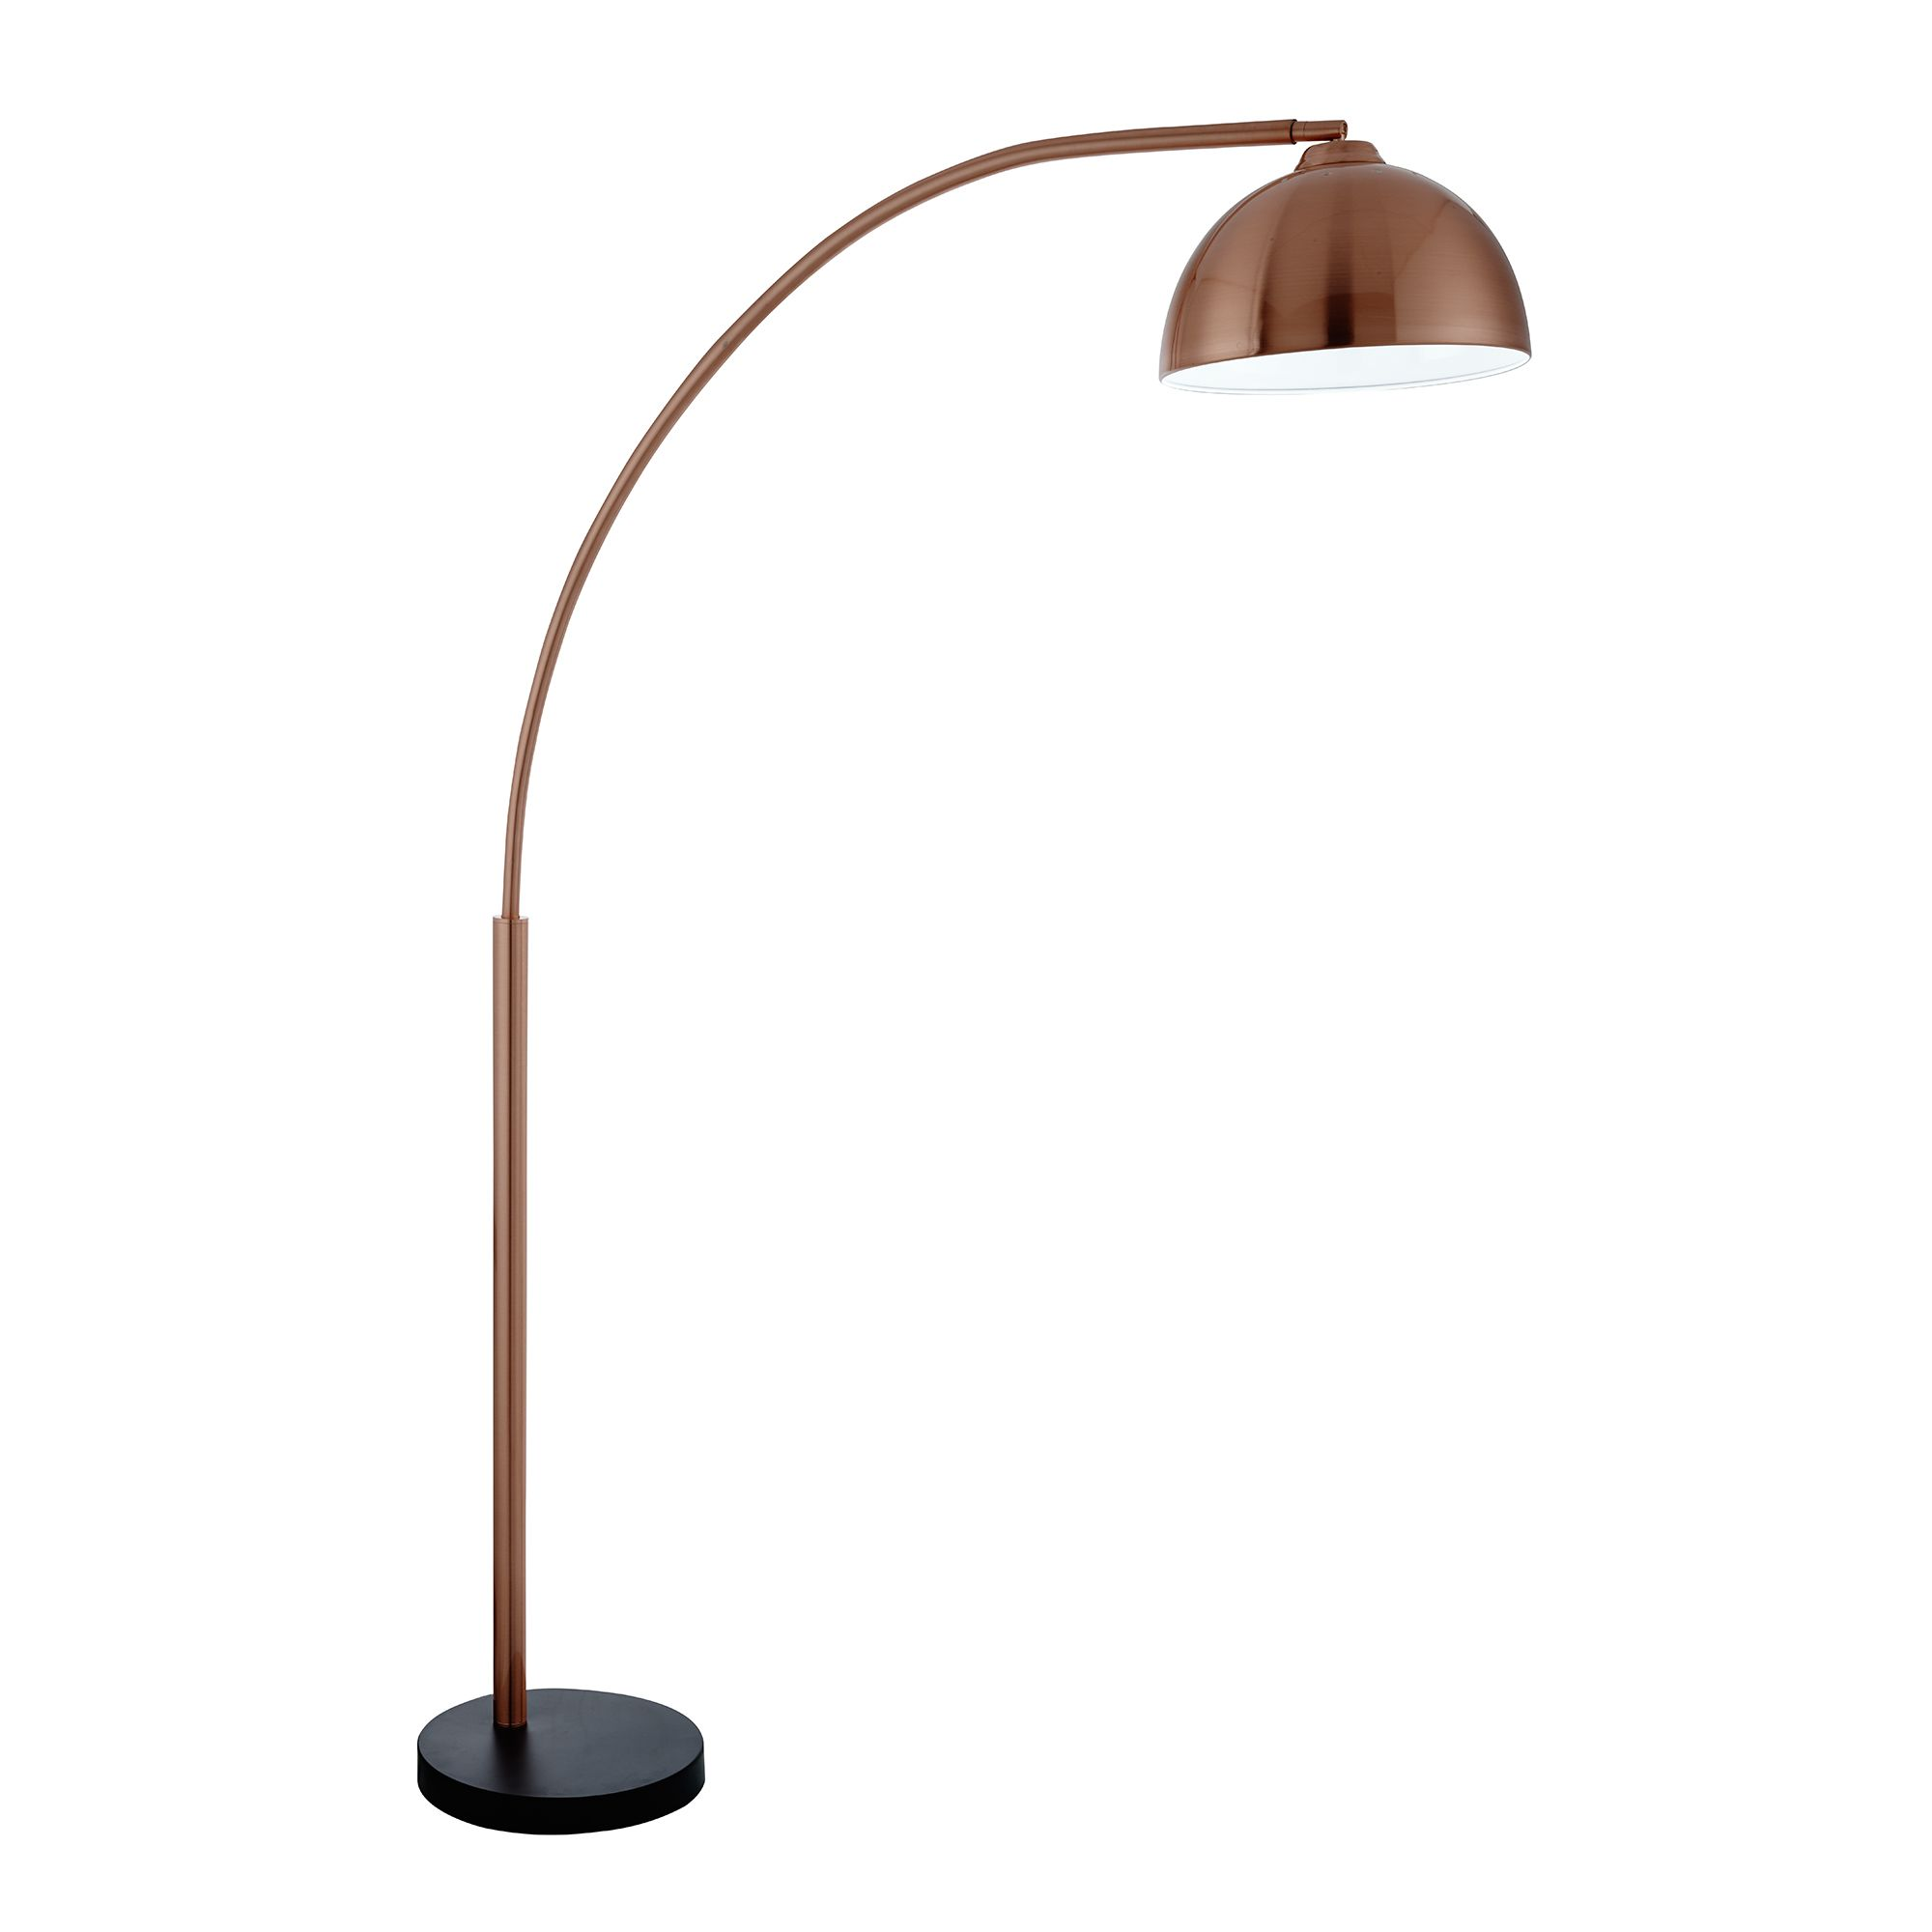 FLOOR LAMP WITH DOME SHAPED METAL SHADE